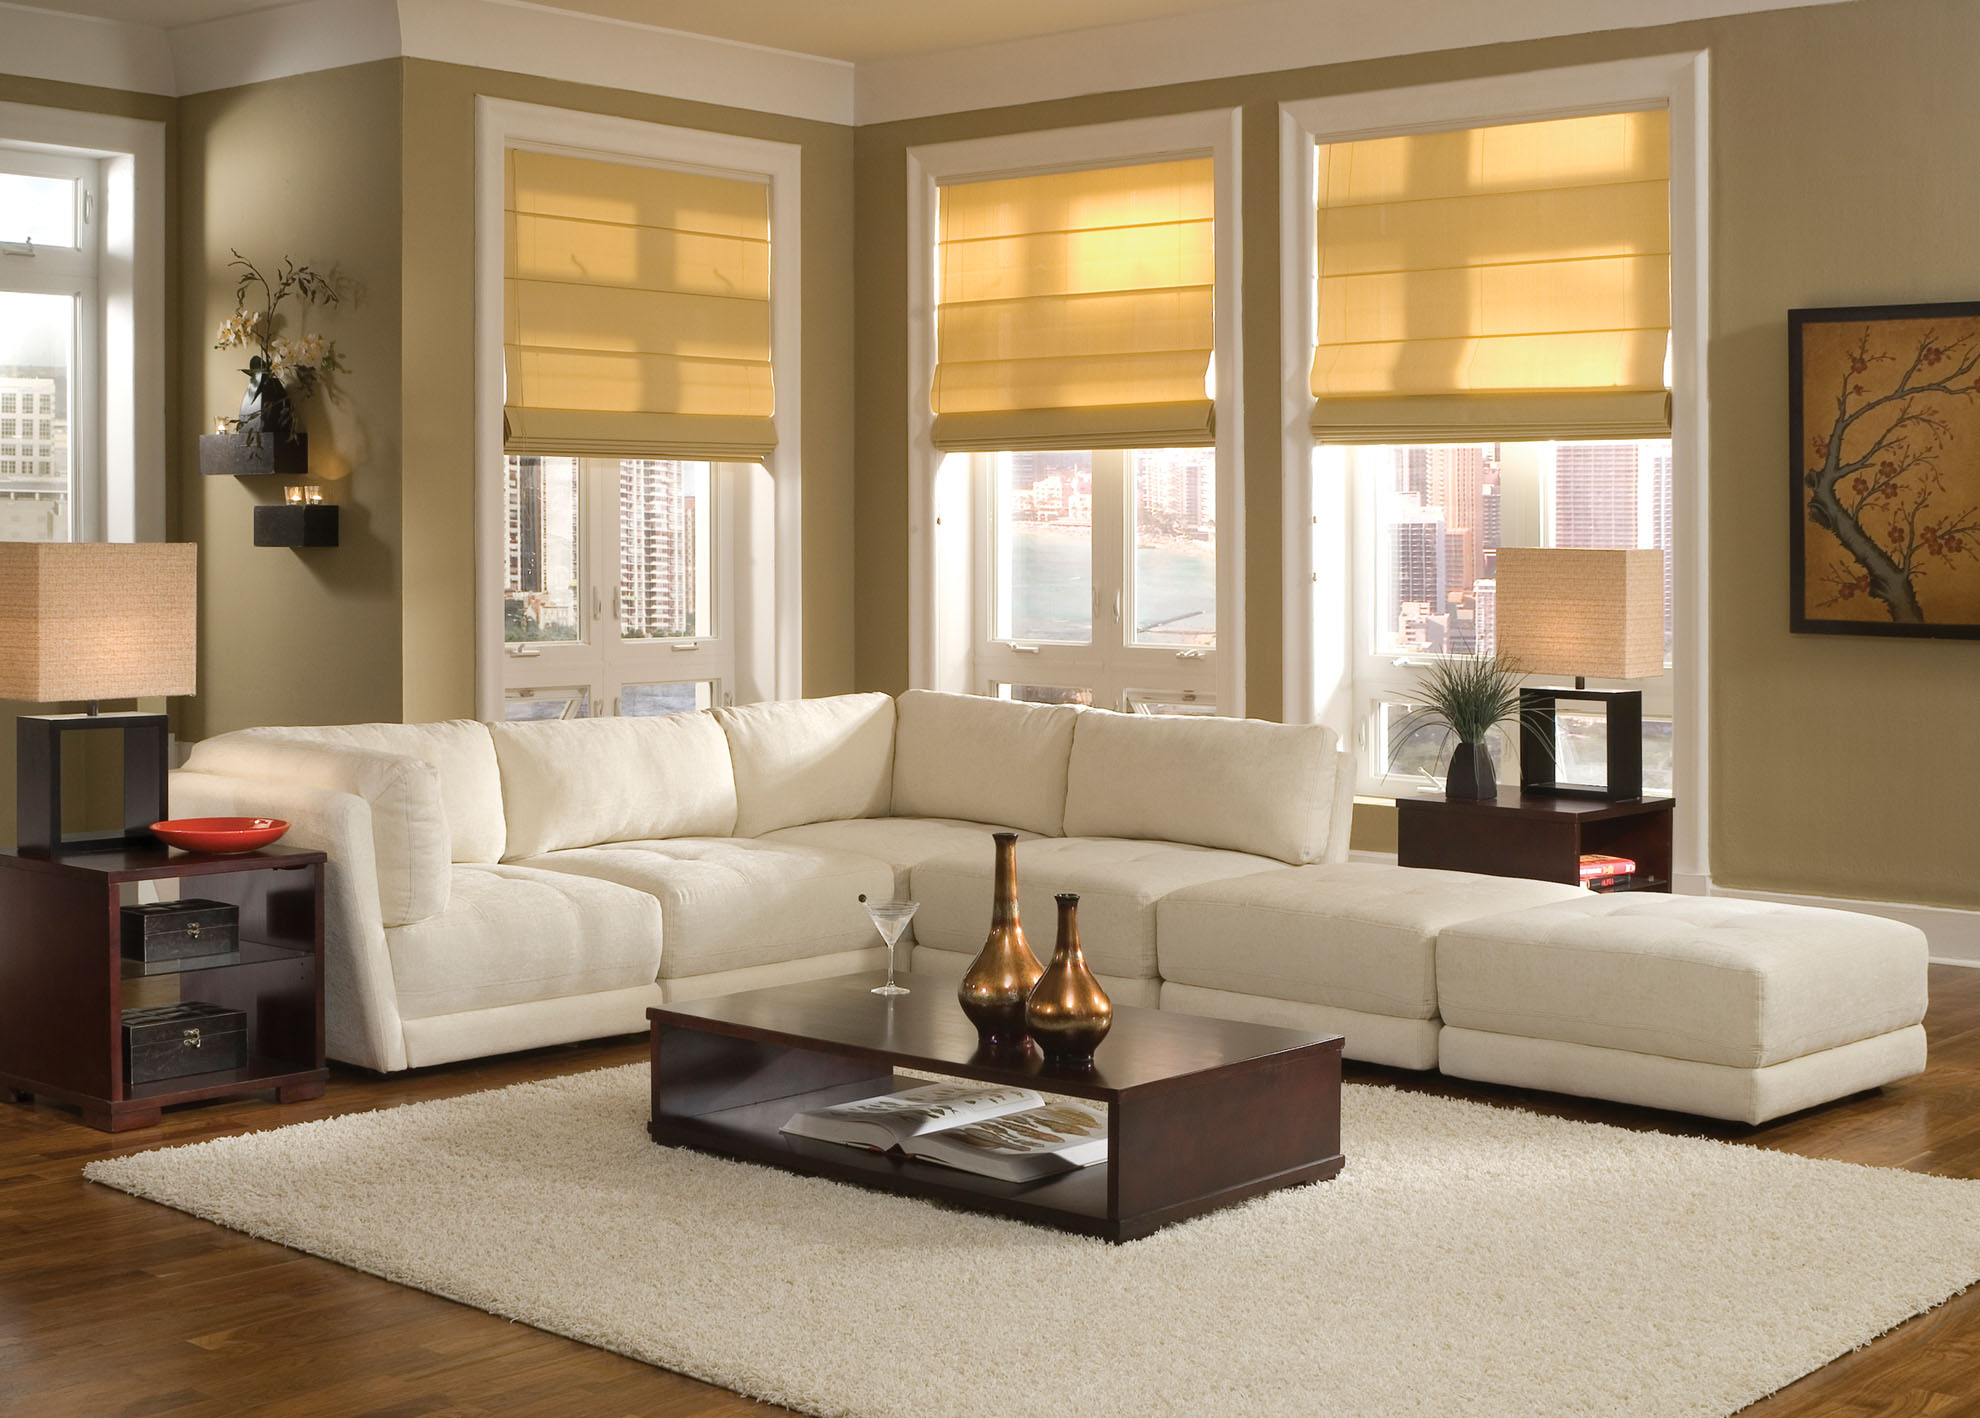 living room decor with sectional. Livingroom Design Sofas White Living Room Decor With Sectional